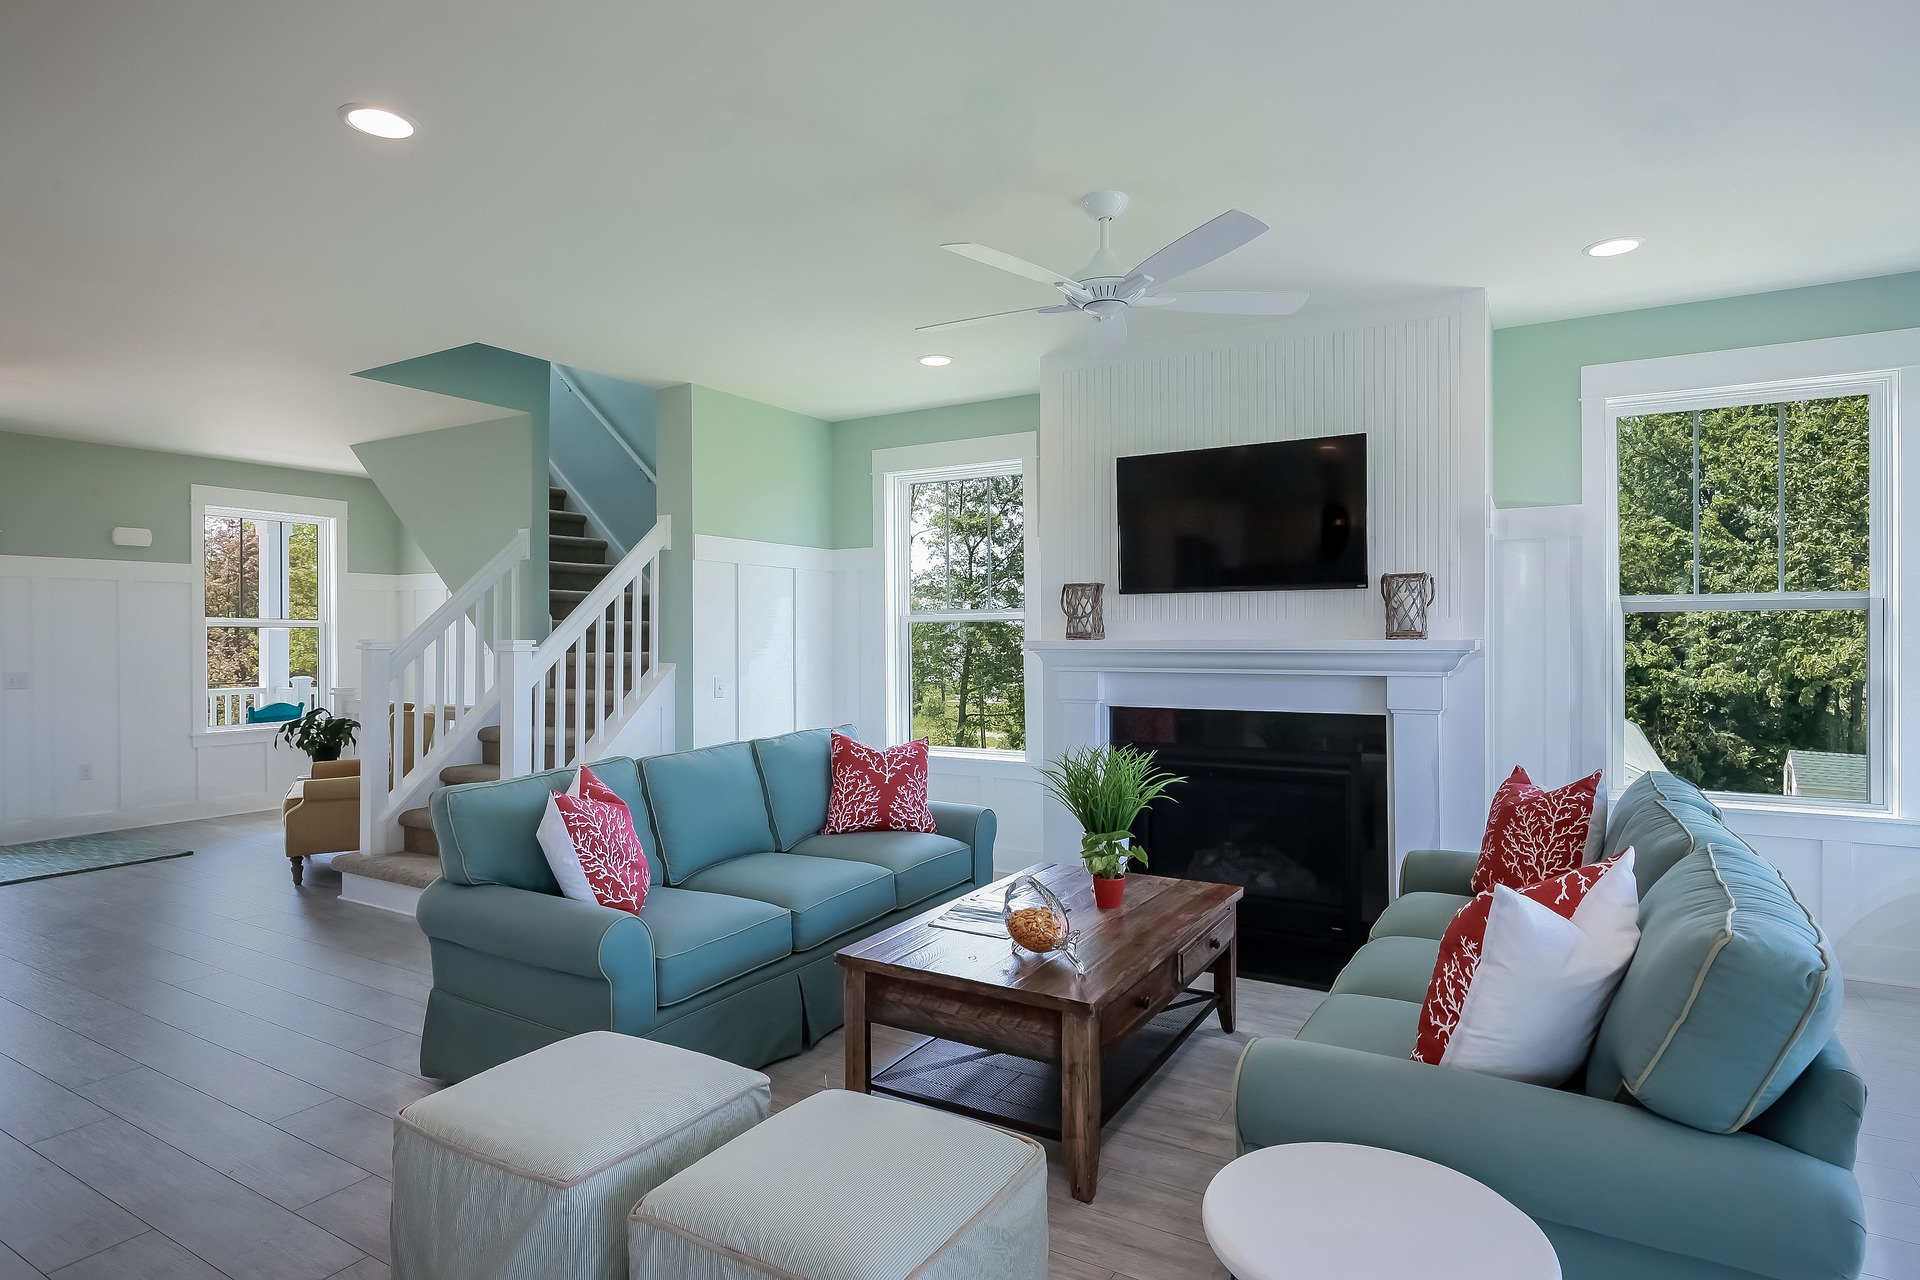 easy spring cleaning tips, how to deep clean your home